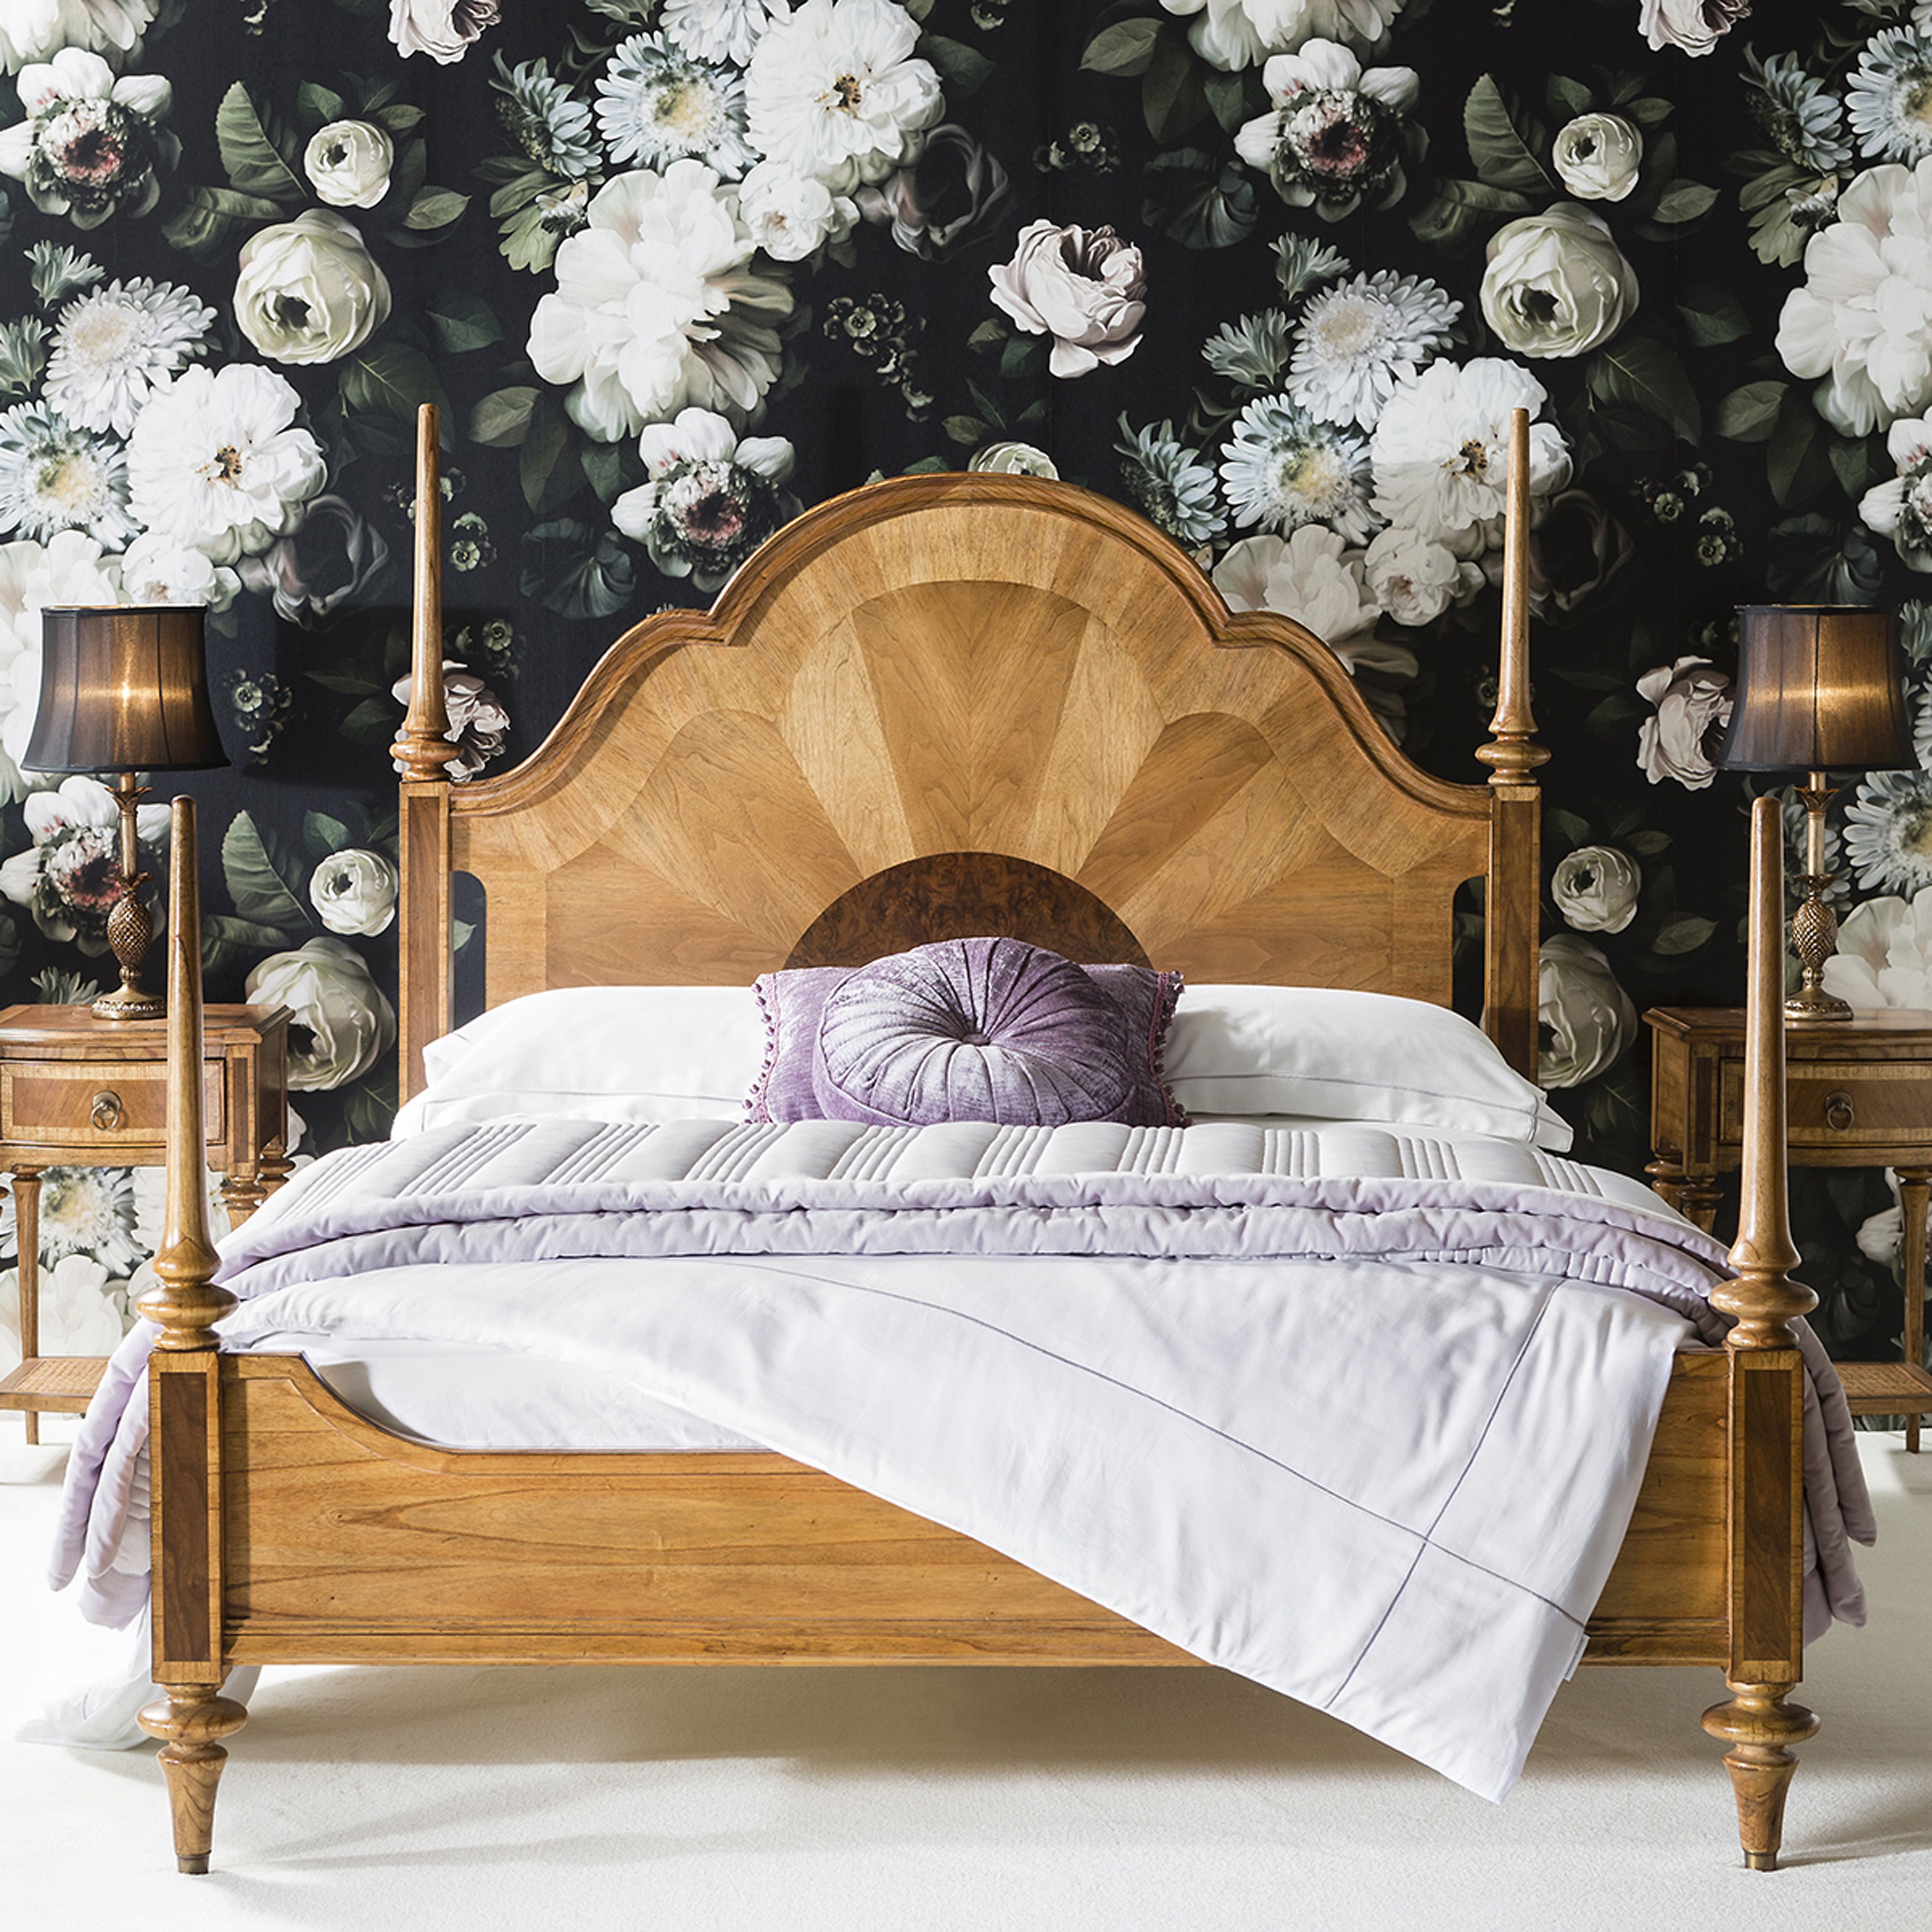 Dream bedroom furniture Build Your Own Dream Bedroom Ideas Newtons Furniture House Beautiful Pinterestworthy Bedrooms Ideas And Inspiration To Create Your